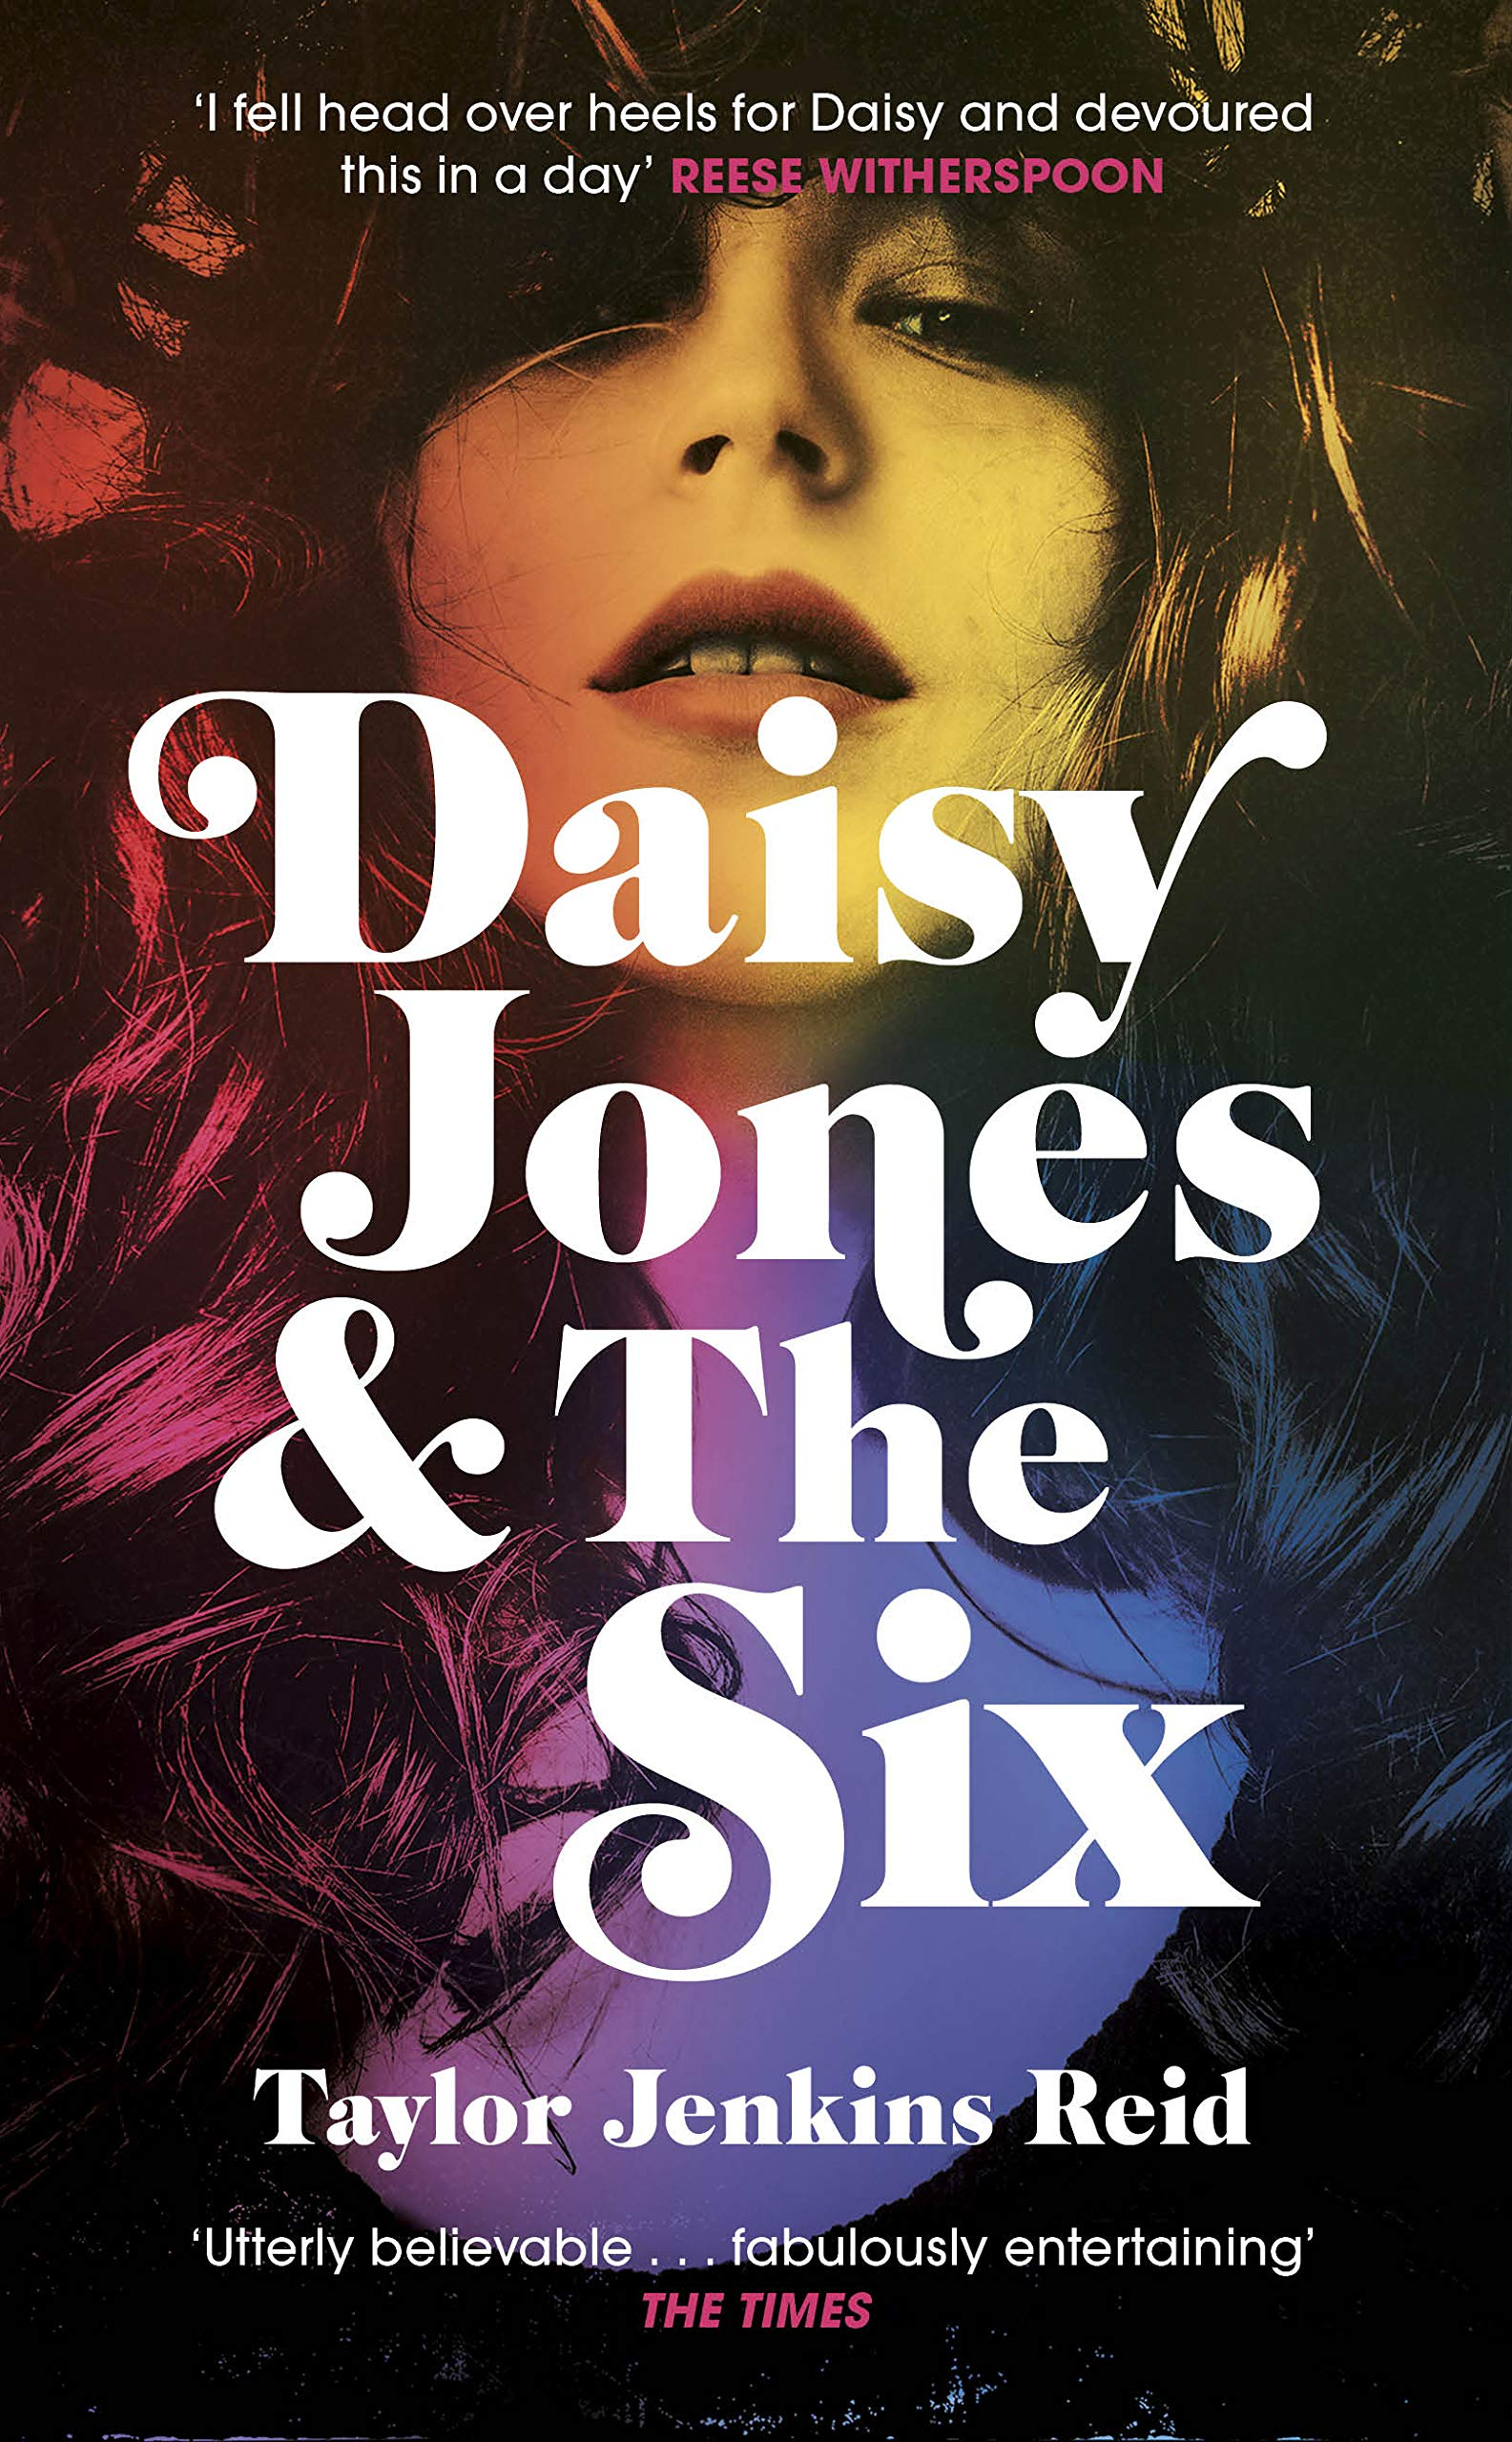 Daisy Jones and The Six: '2019's first pop-culture sensation' – Telegraph por Taylor Jenkins Reid